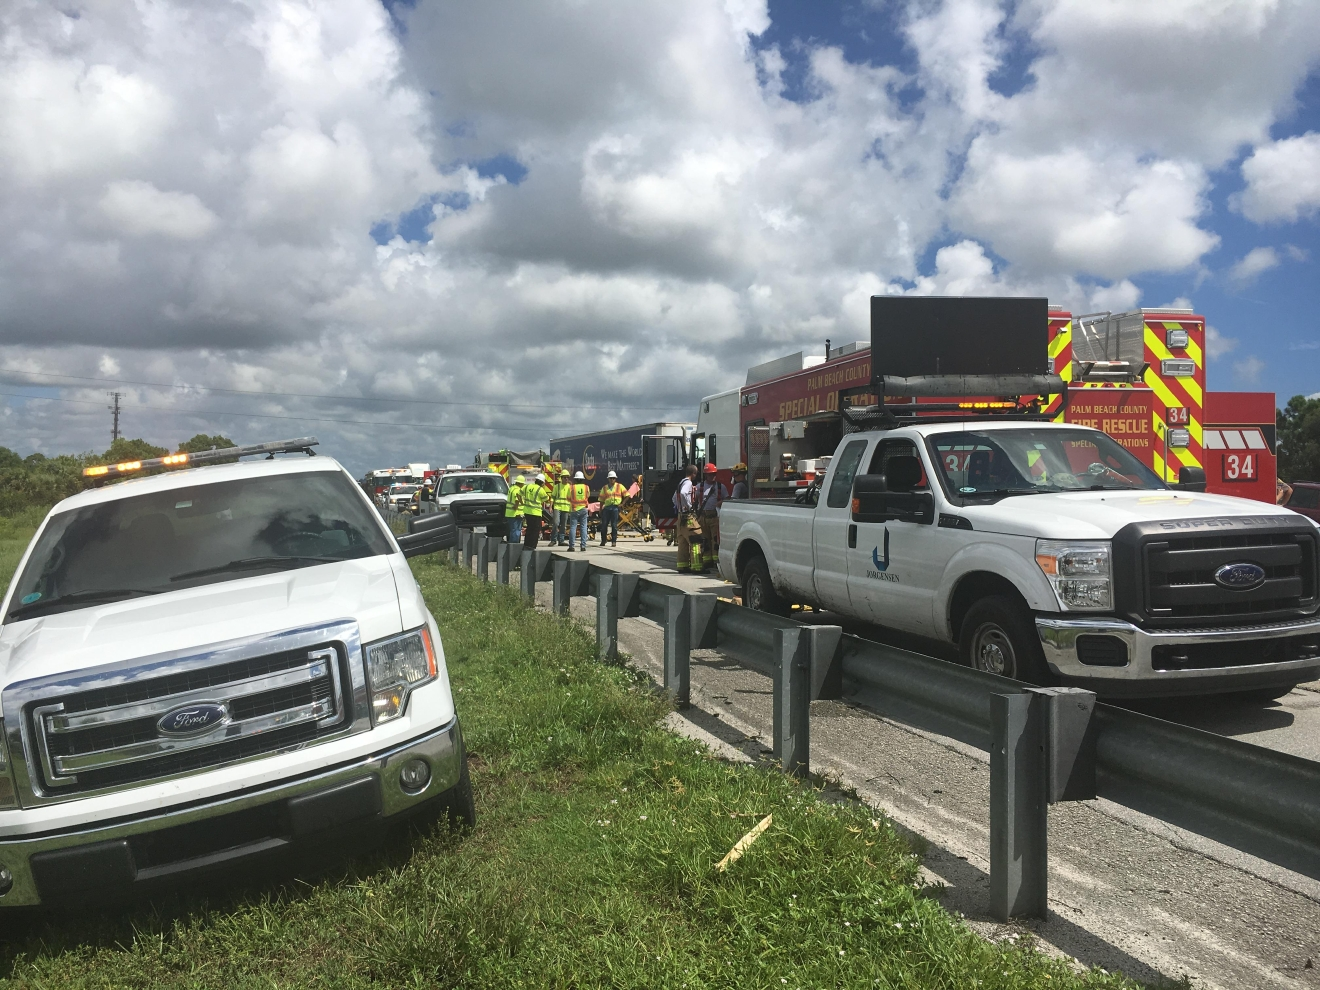 FL Turnpike grave accidente.JPG